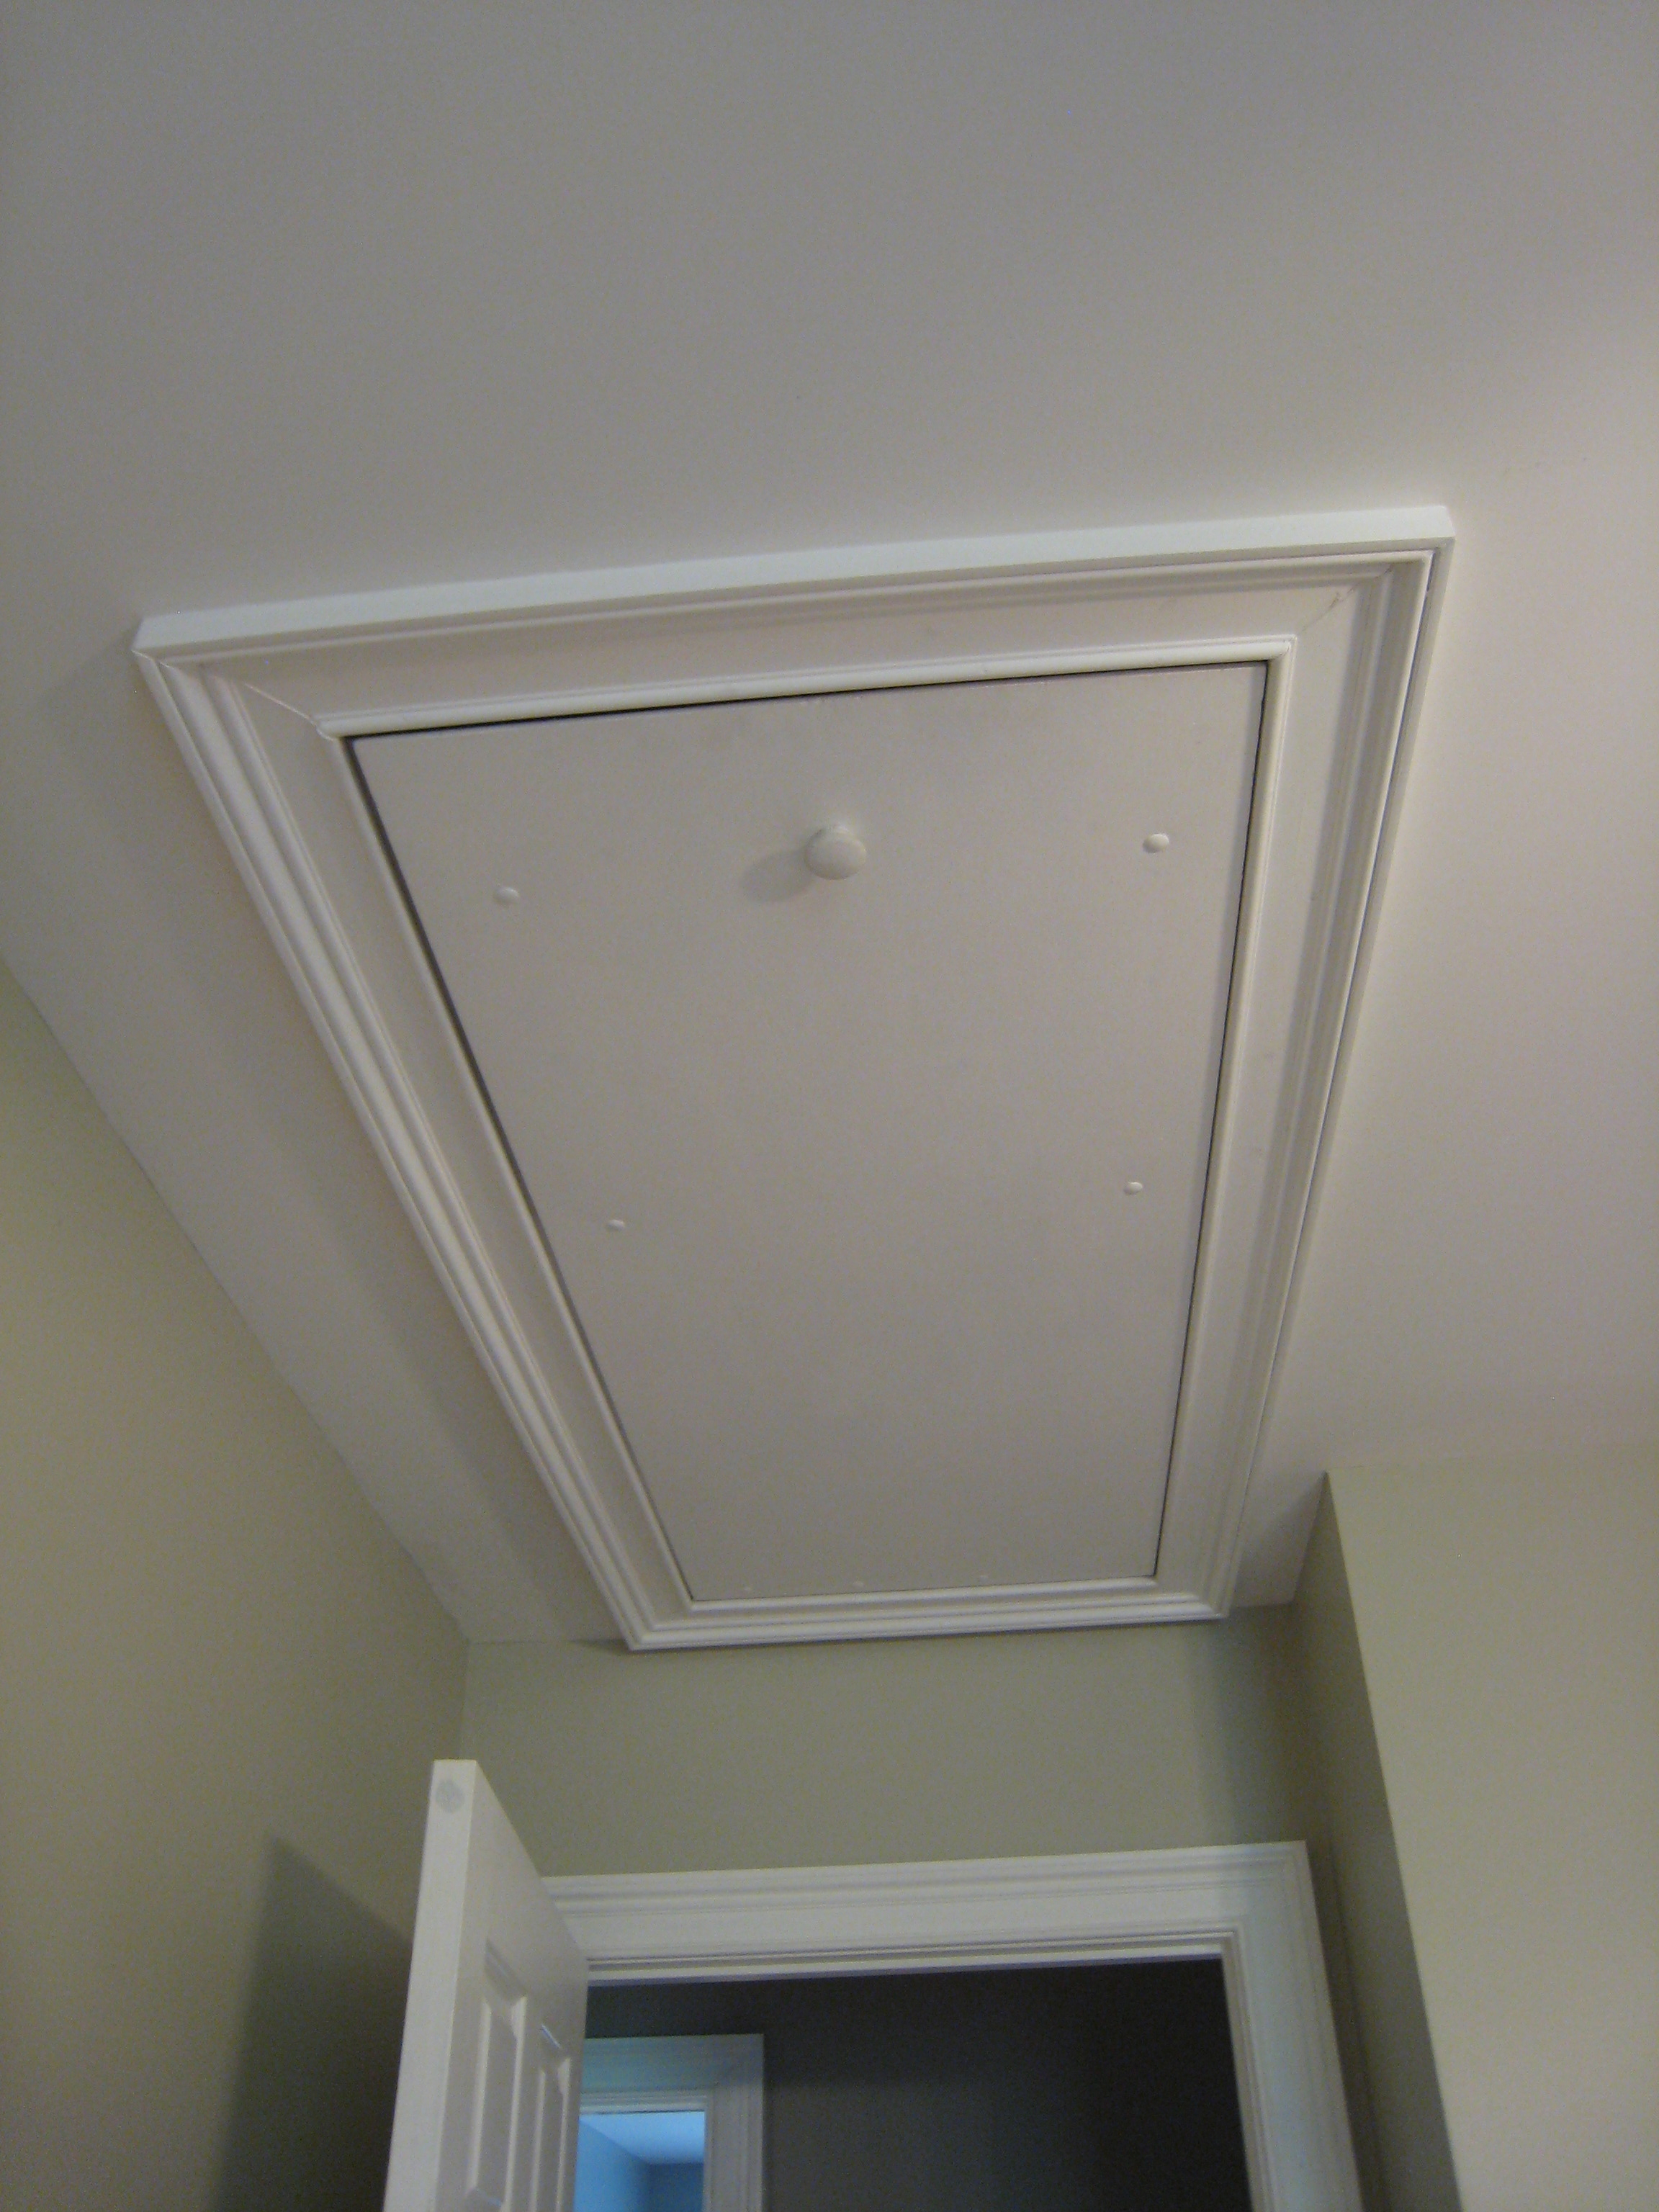 Access Door For Under Stair Storage My Own Ideas Simple Before Choose Attic Doors Within Prepare 5 Ceiling Cover